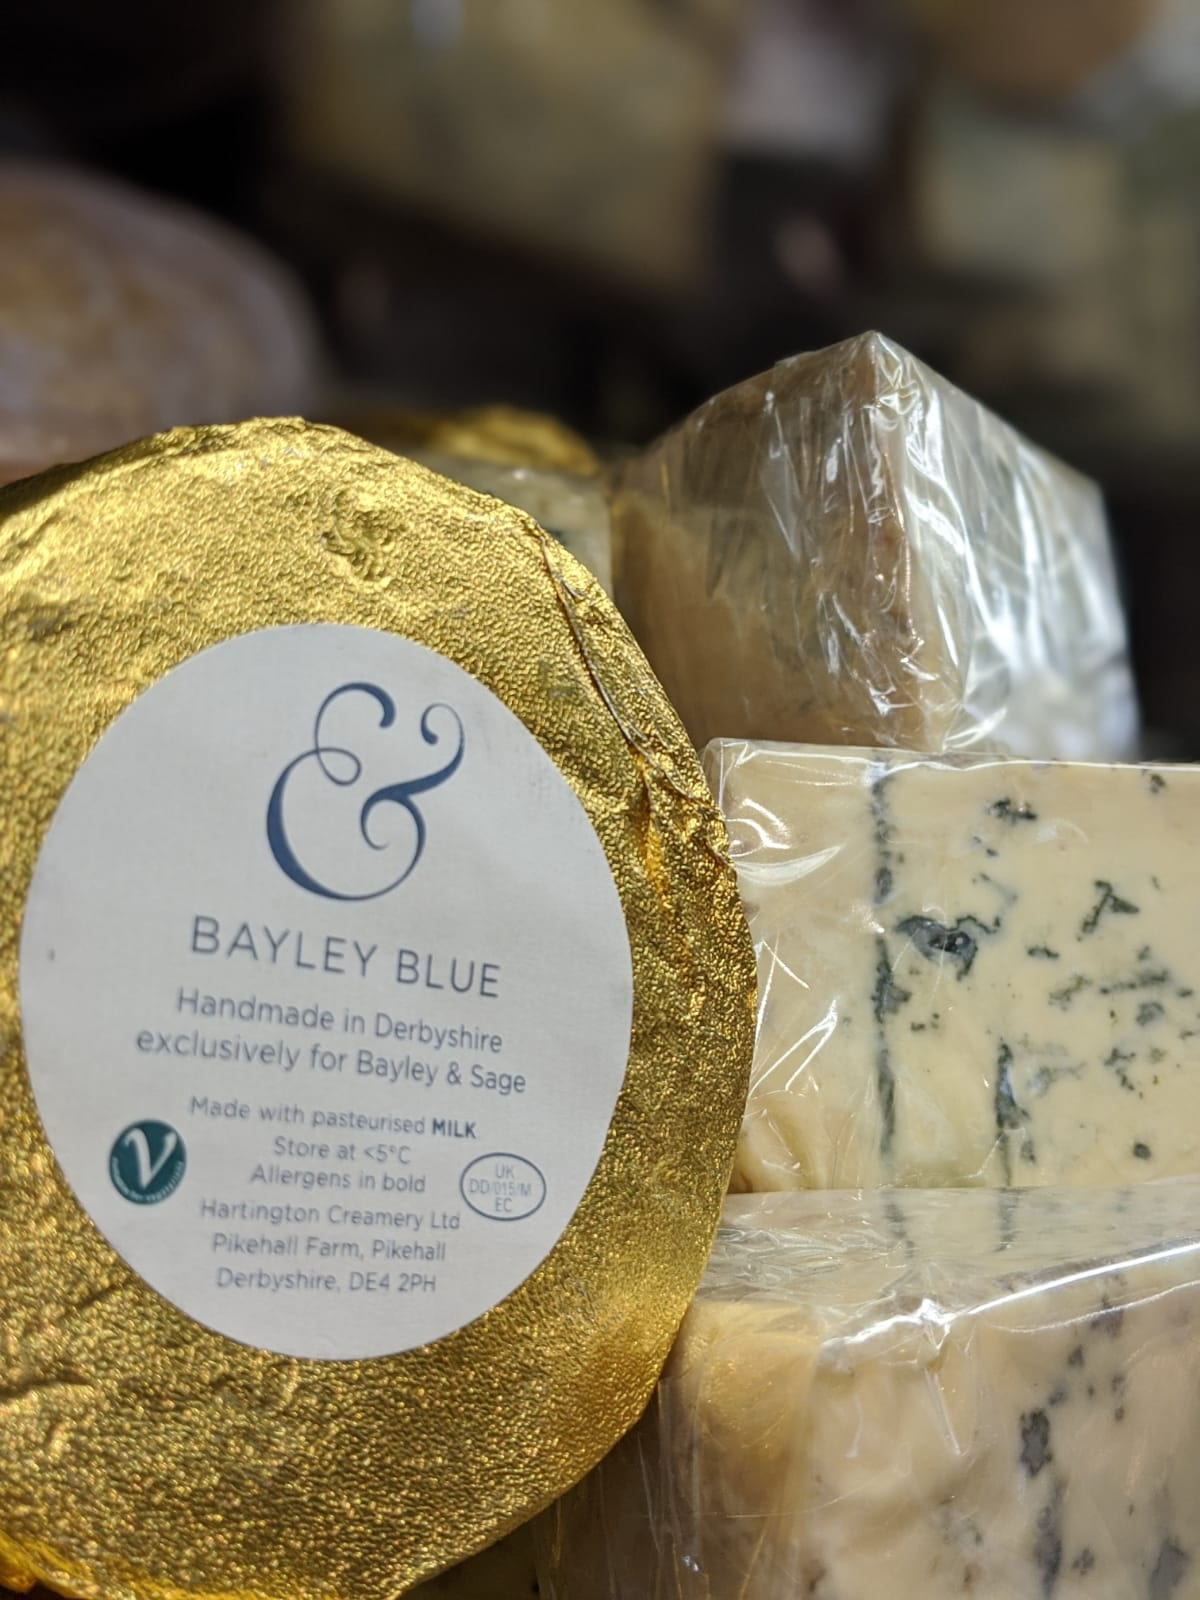 Bayley Blue – Our Own Label Cheese